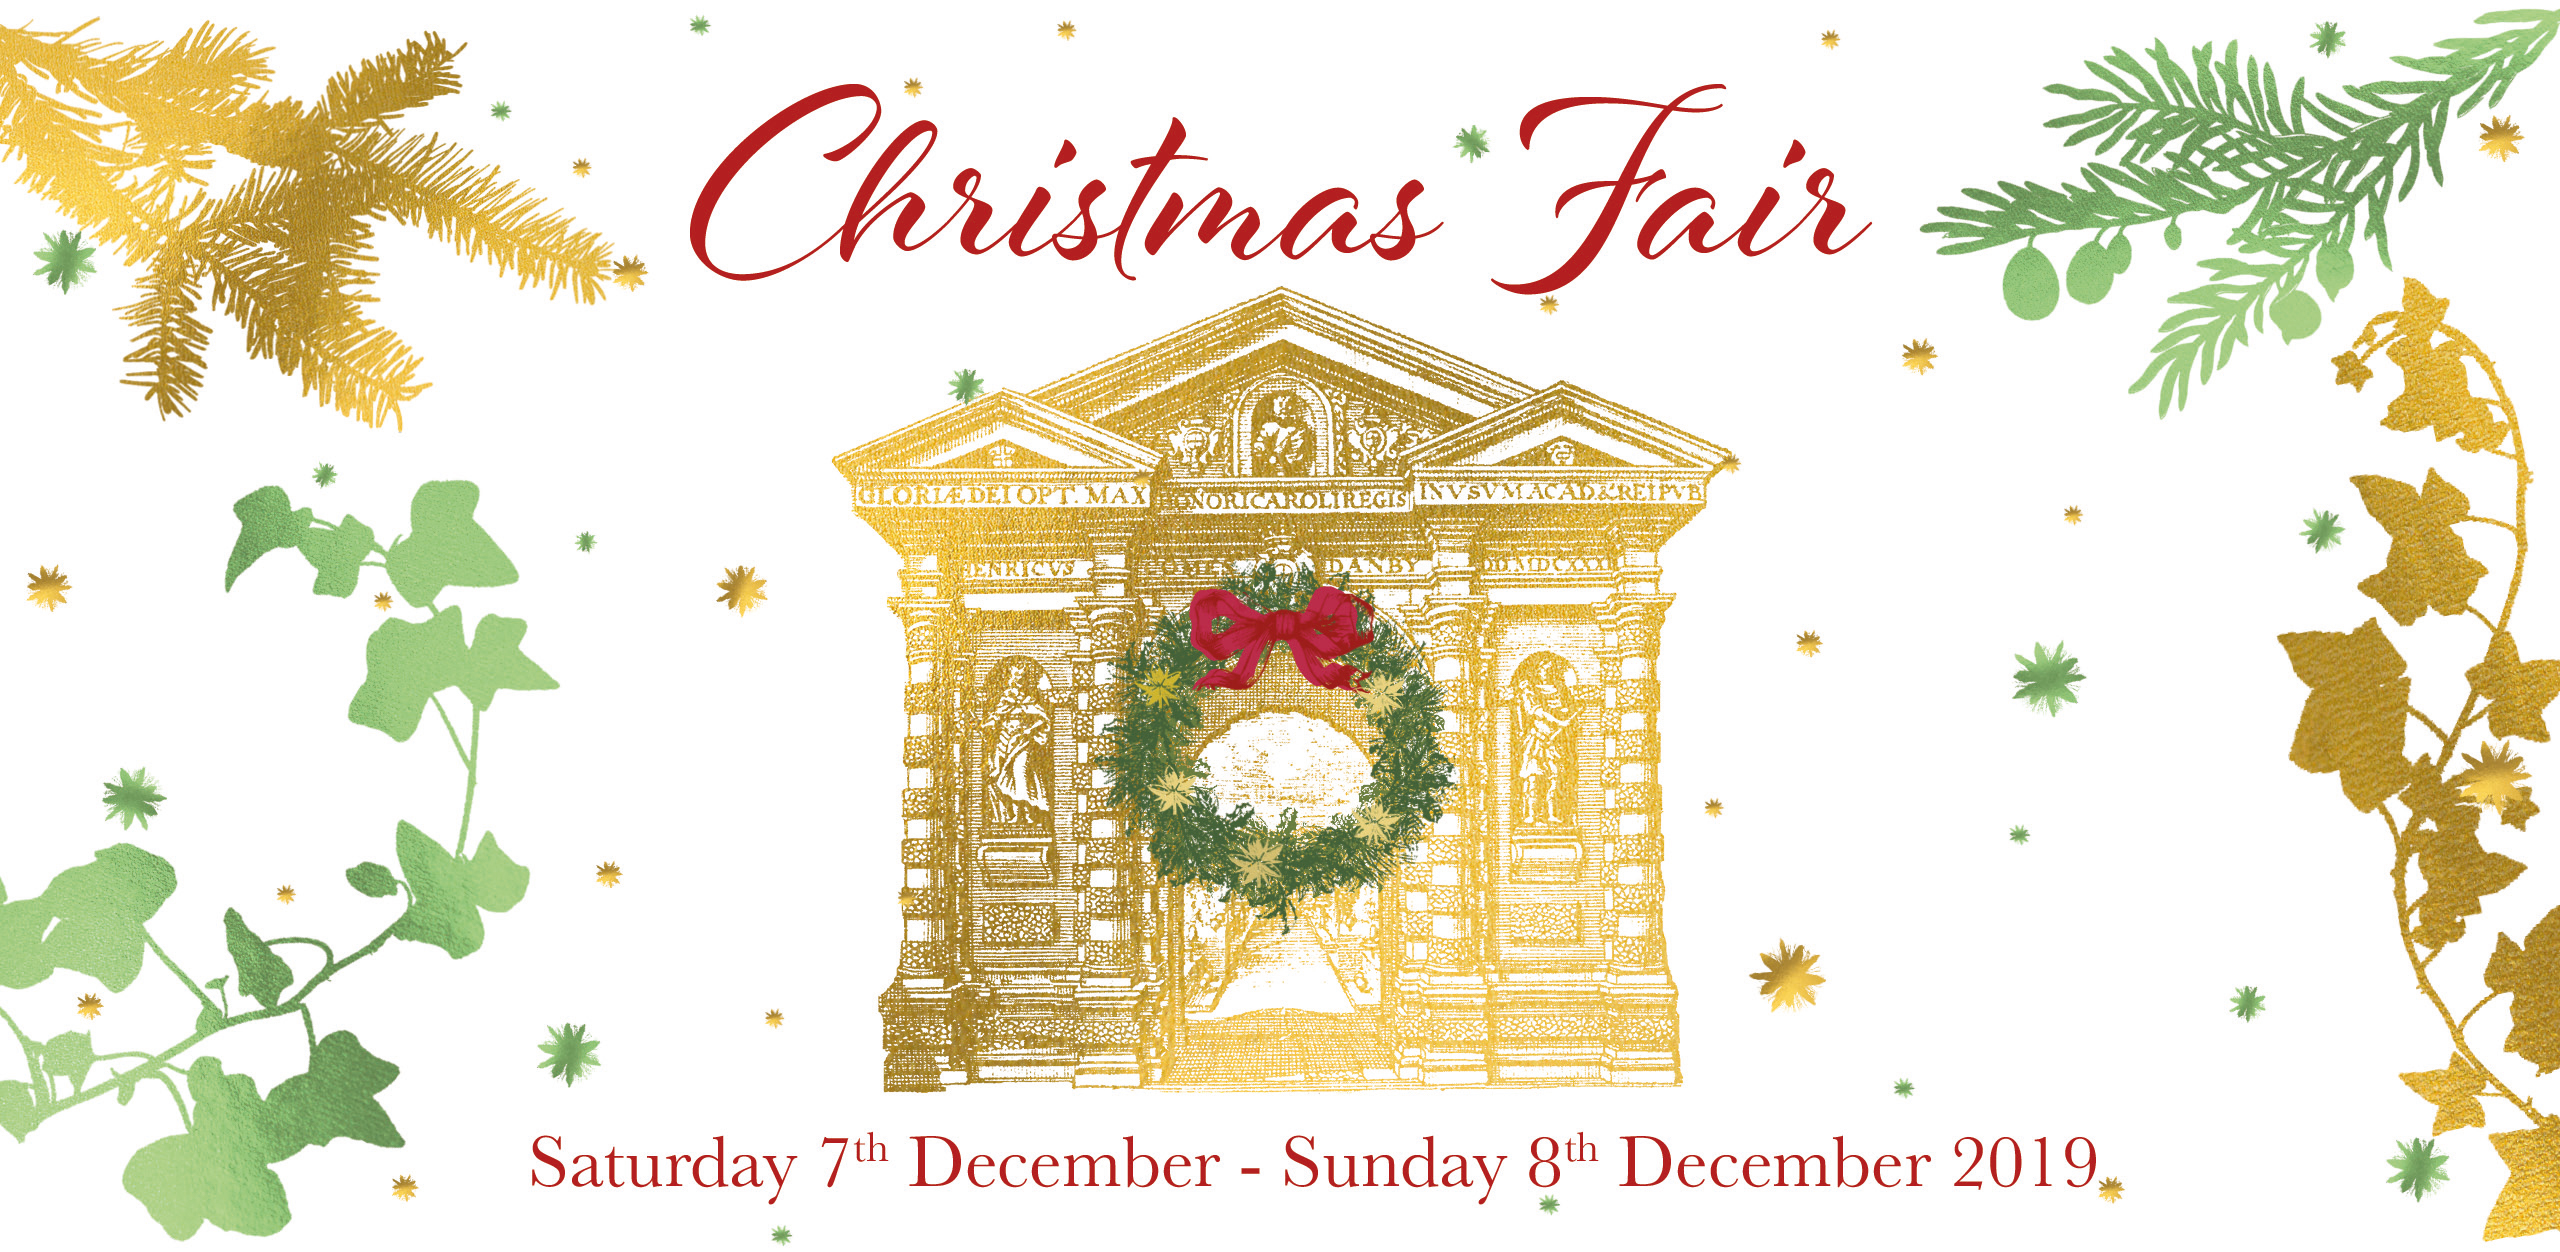 christmas fair 2019  website event banner